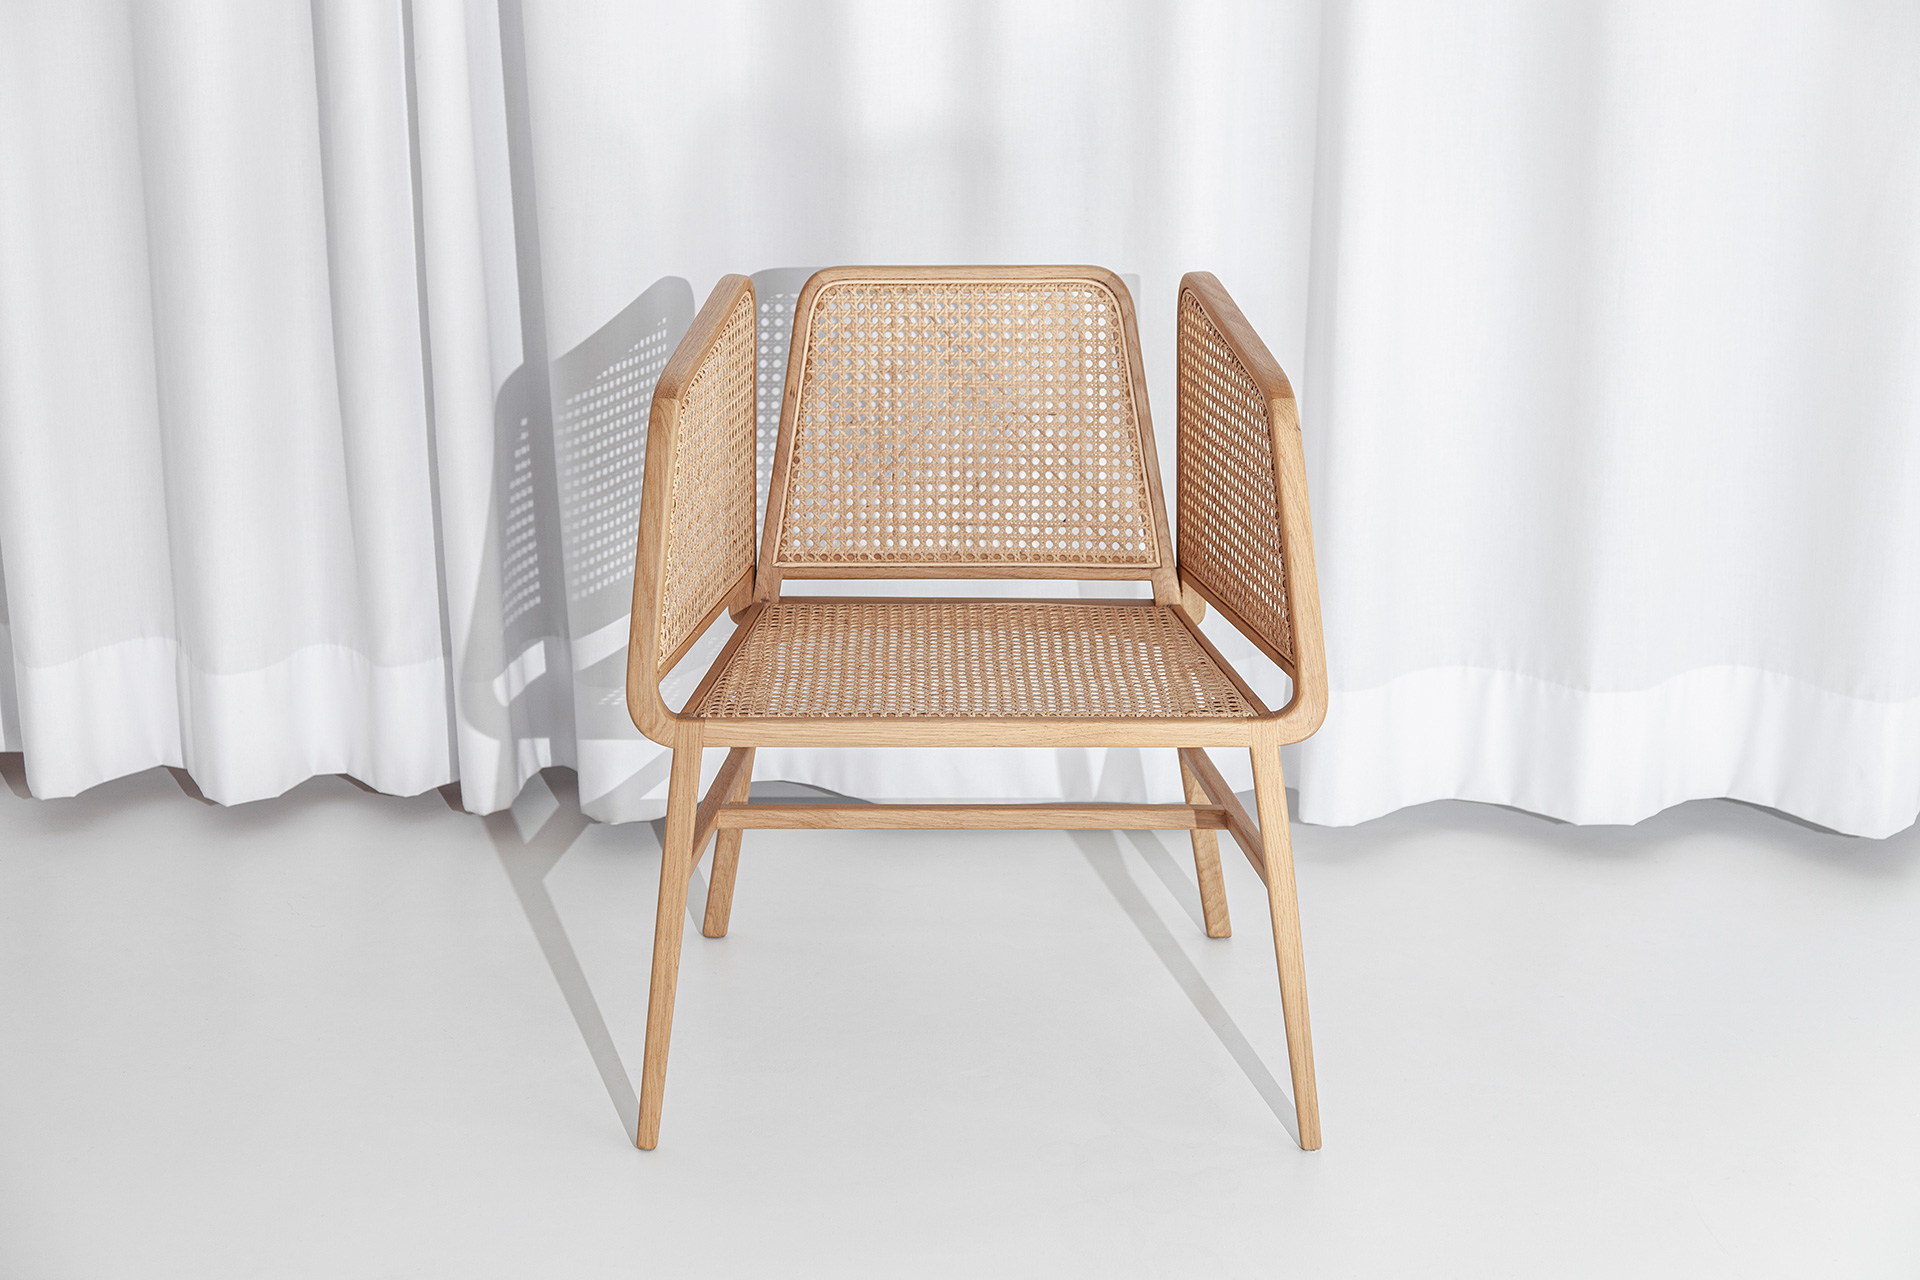 Bee Chair State View - DESIGN BY MIGUEL SOEIRO